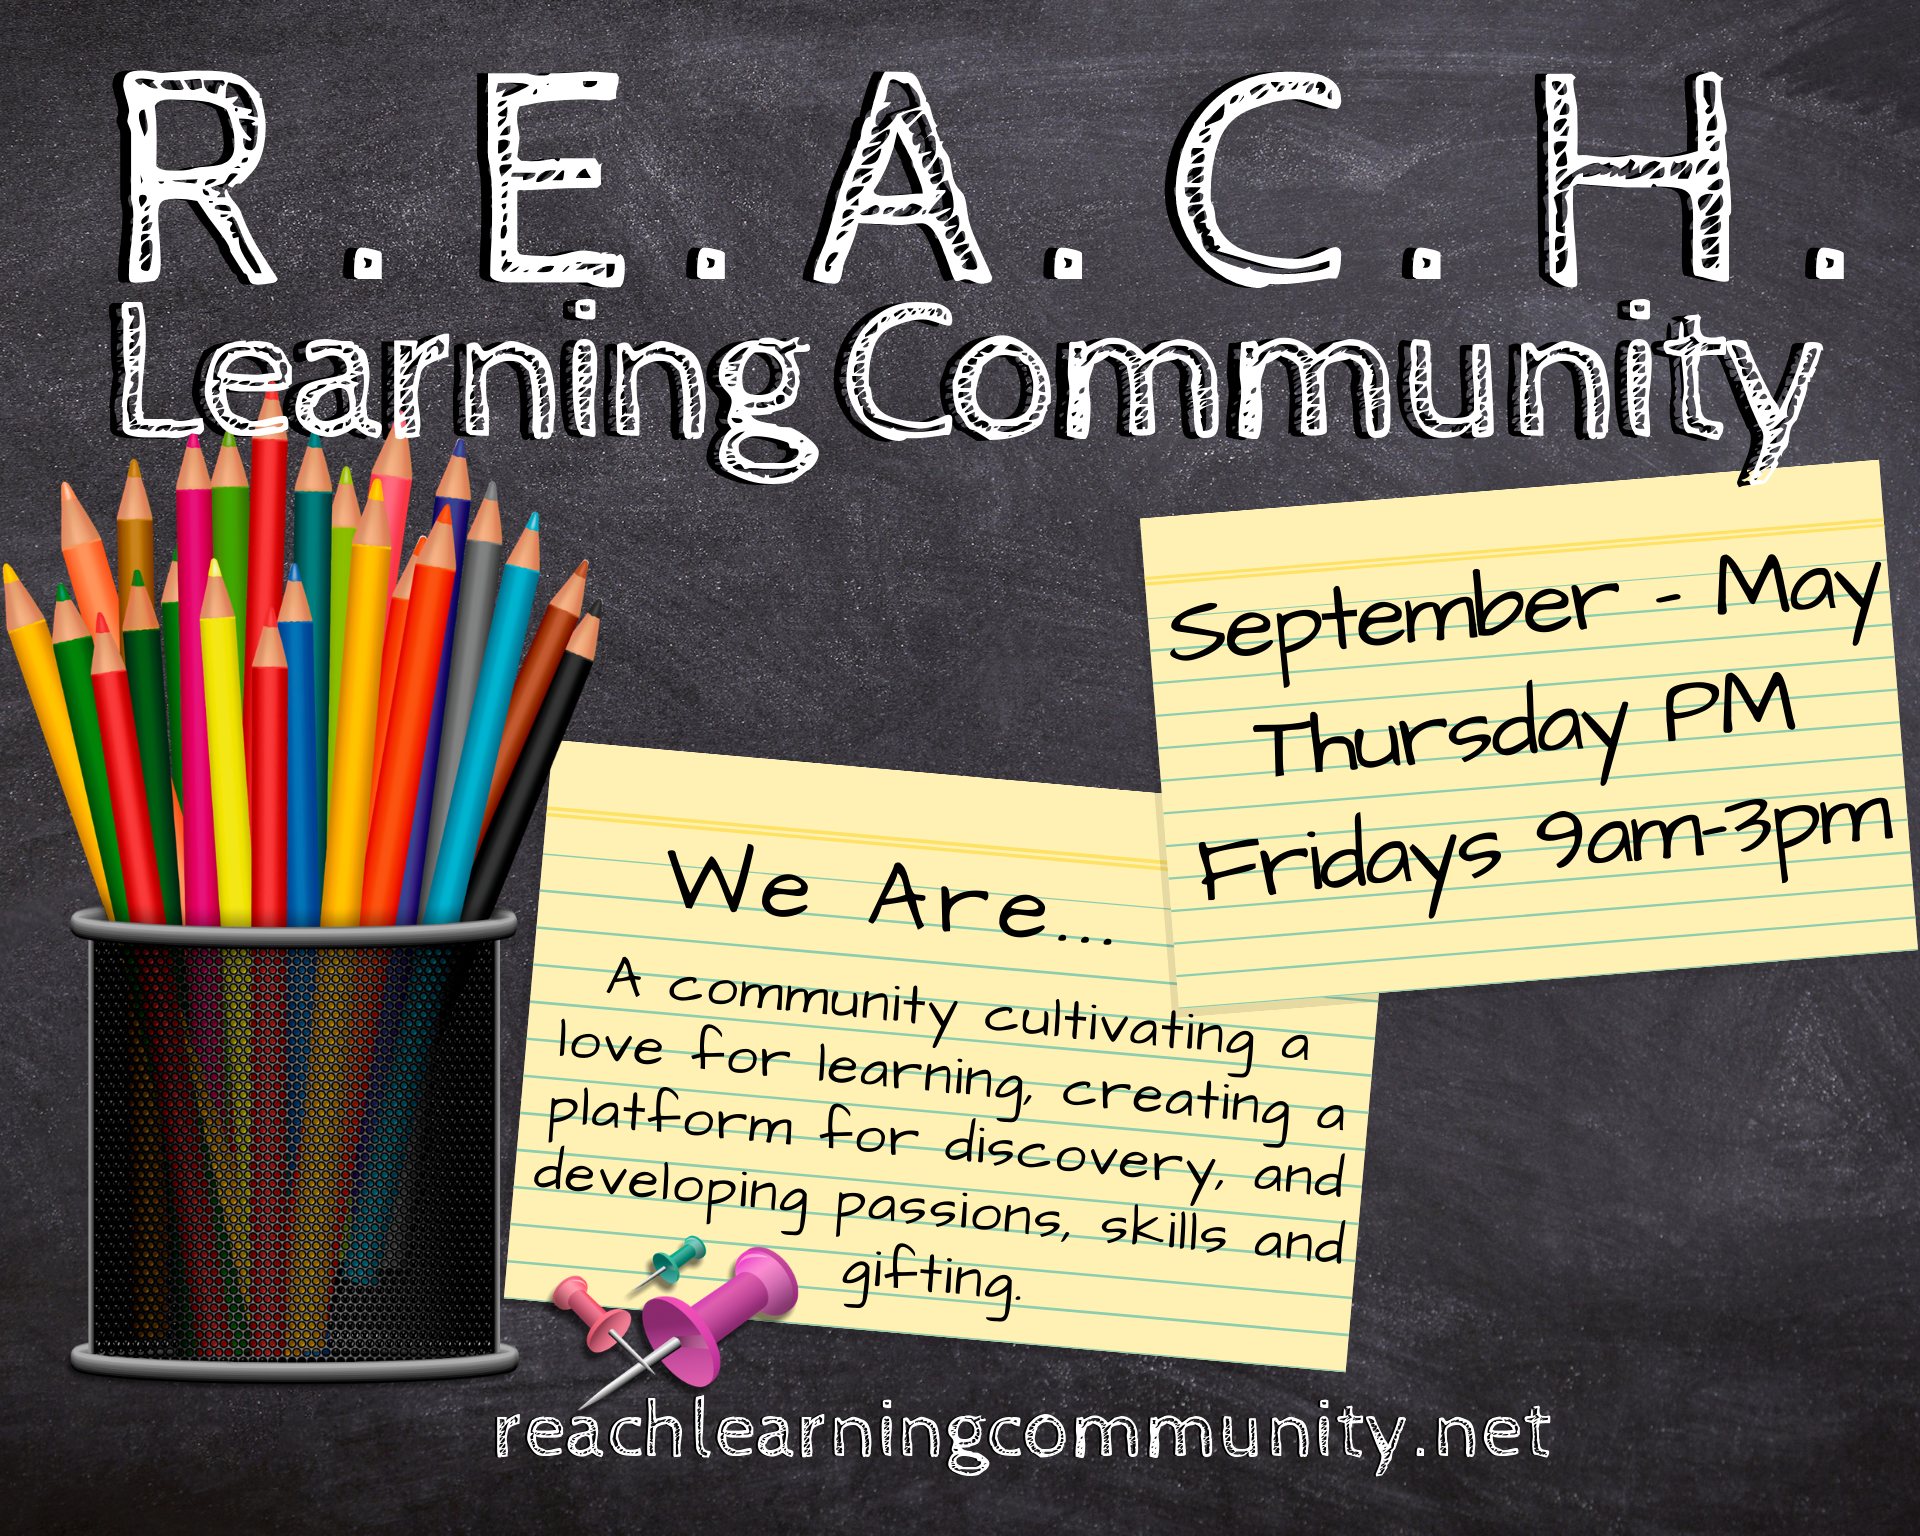 REACH Learning Community - Fridays from 9am - 3pm. A community cultivating a love for learning.